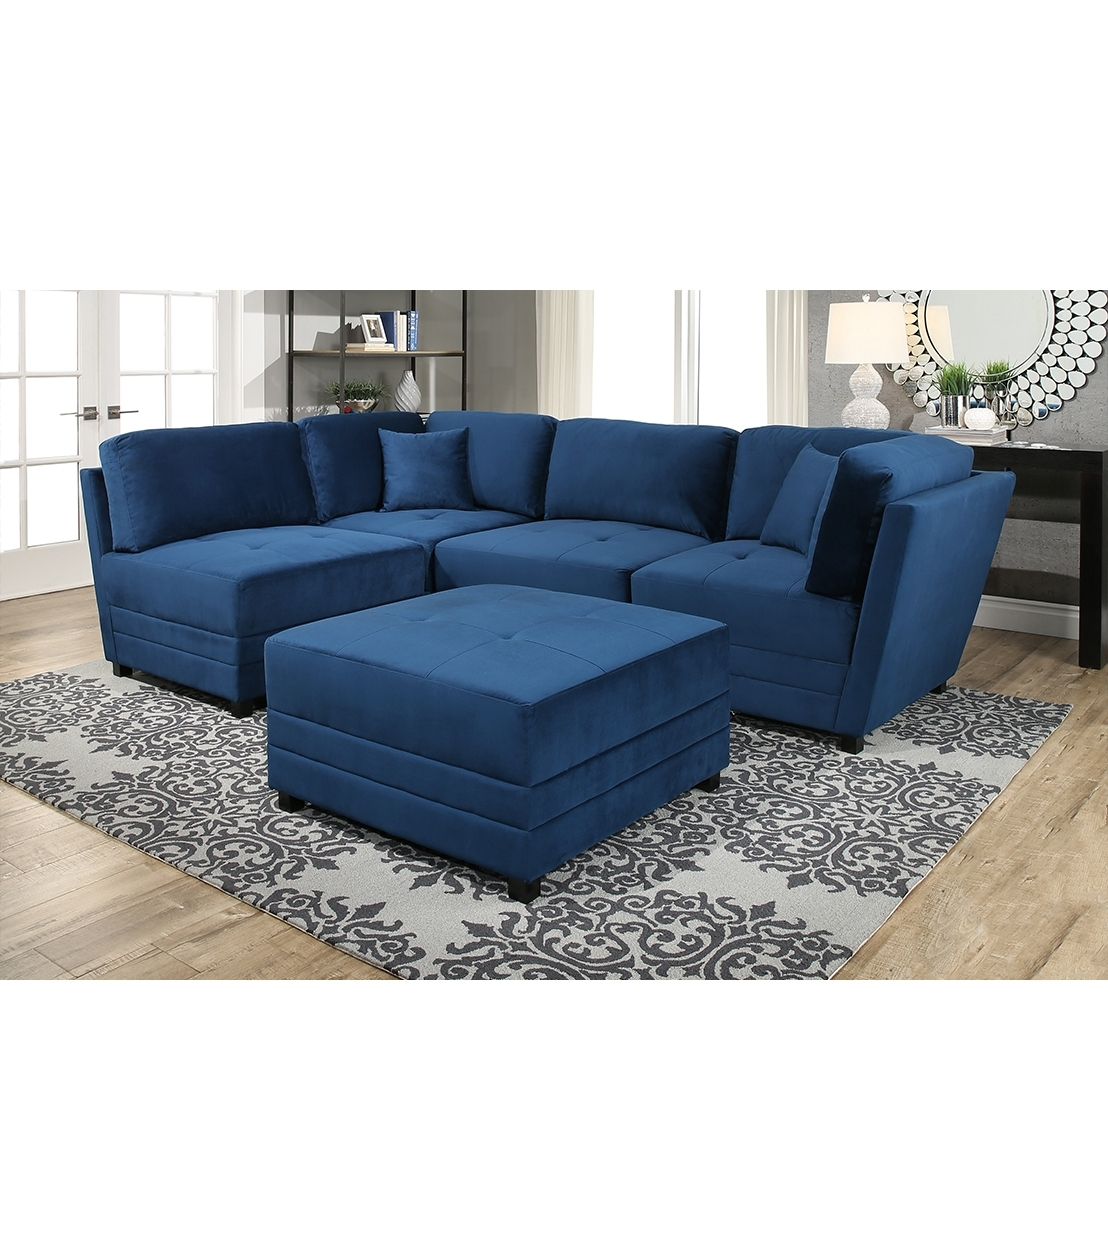 Fashionable Abbyson Sectional Sofas Intended For New Arrivals : Leyla Sectional, Blue (View 10 of 15)